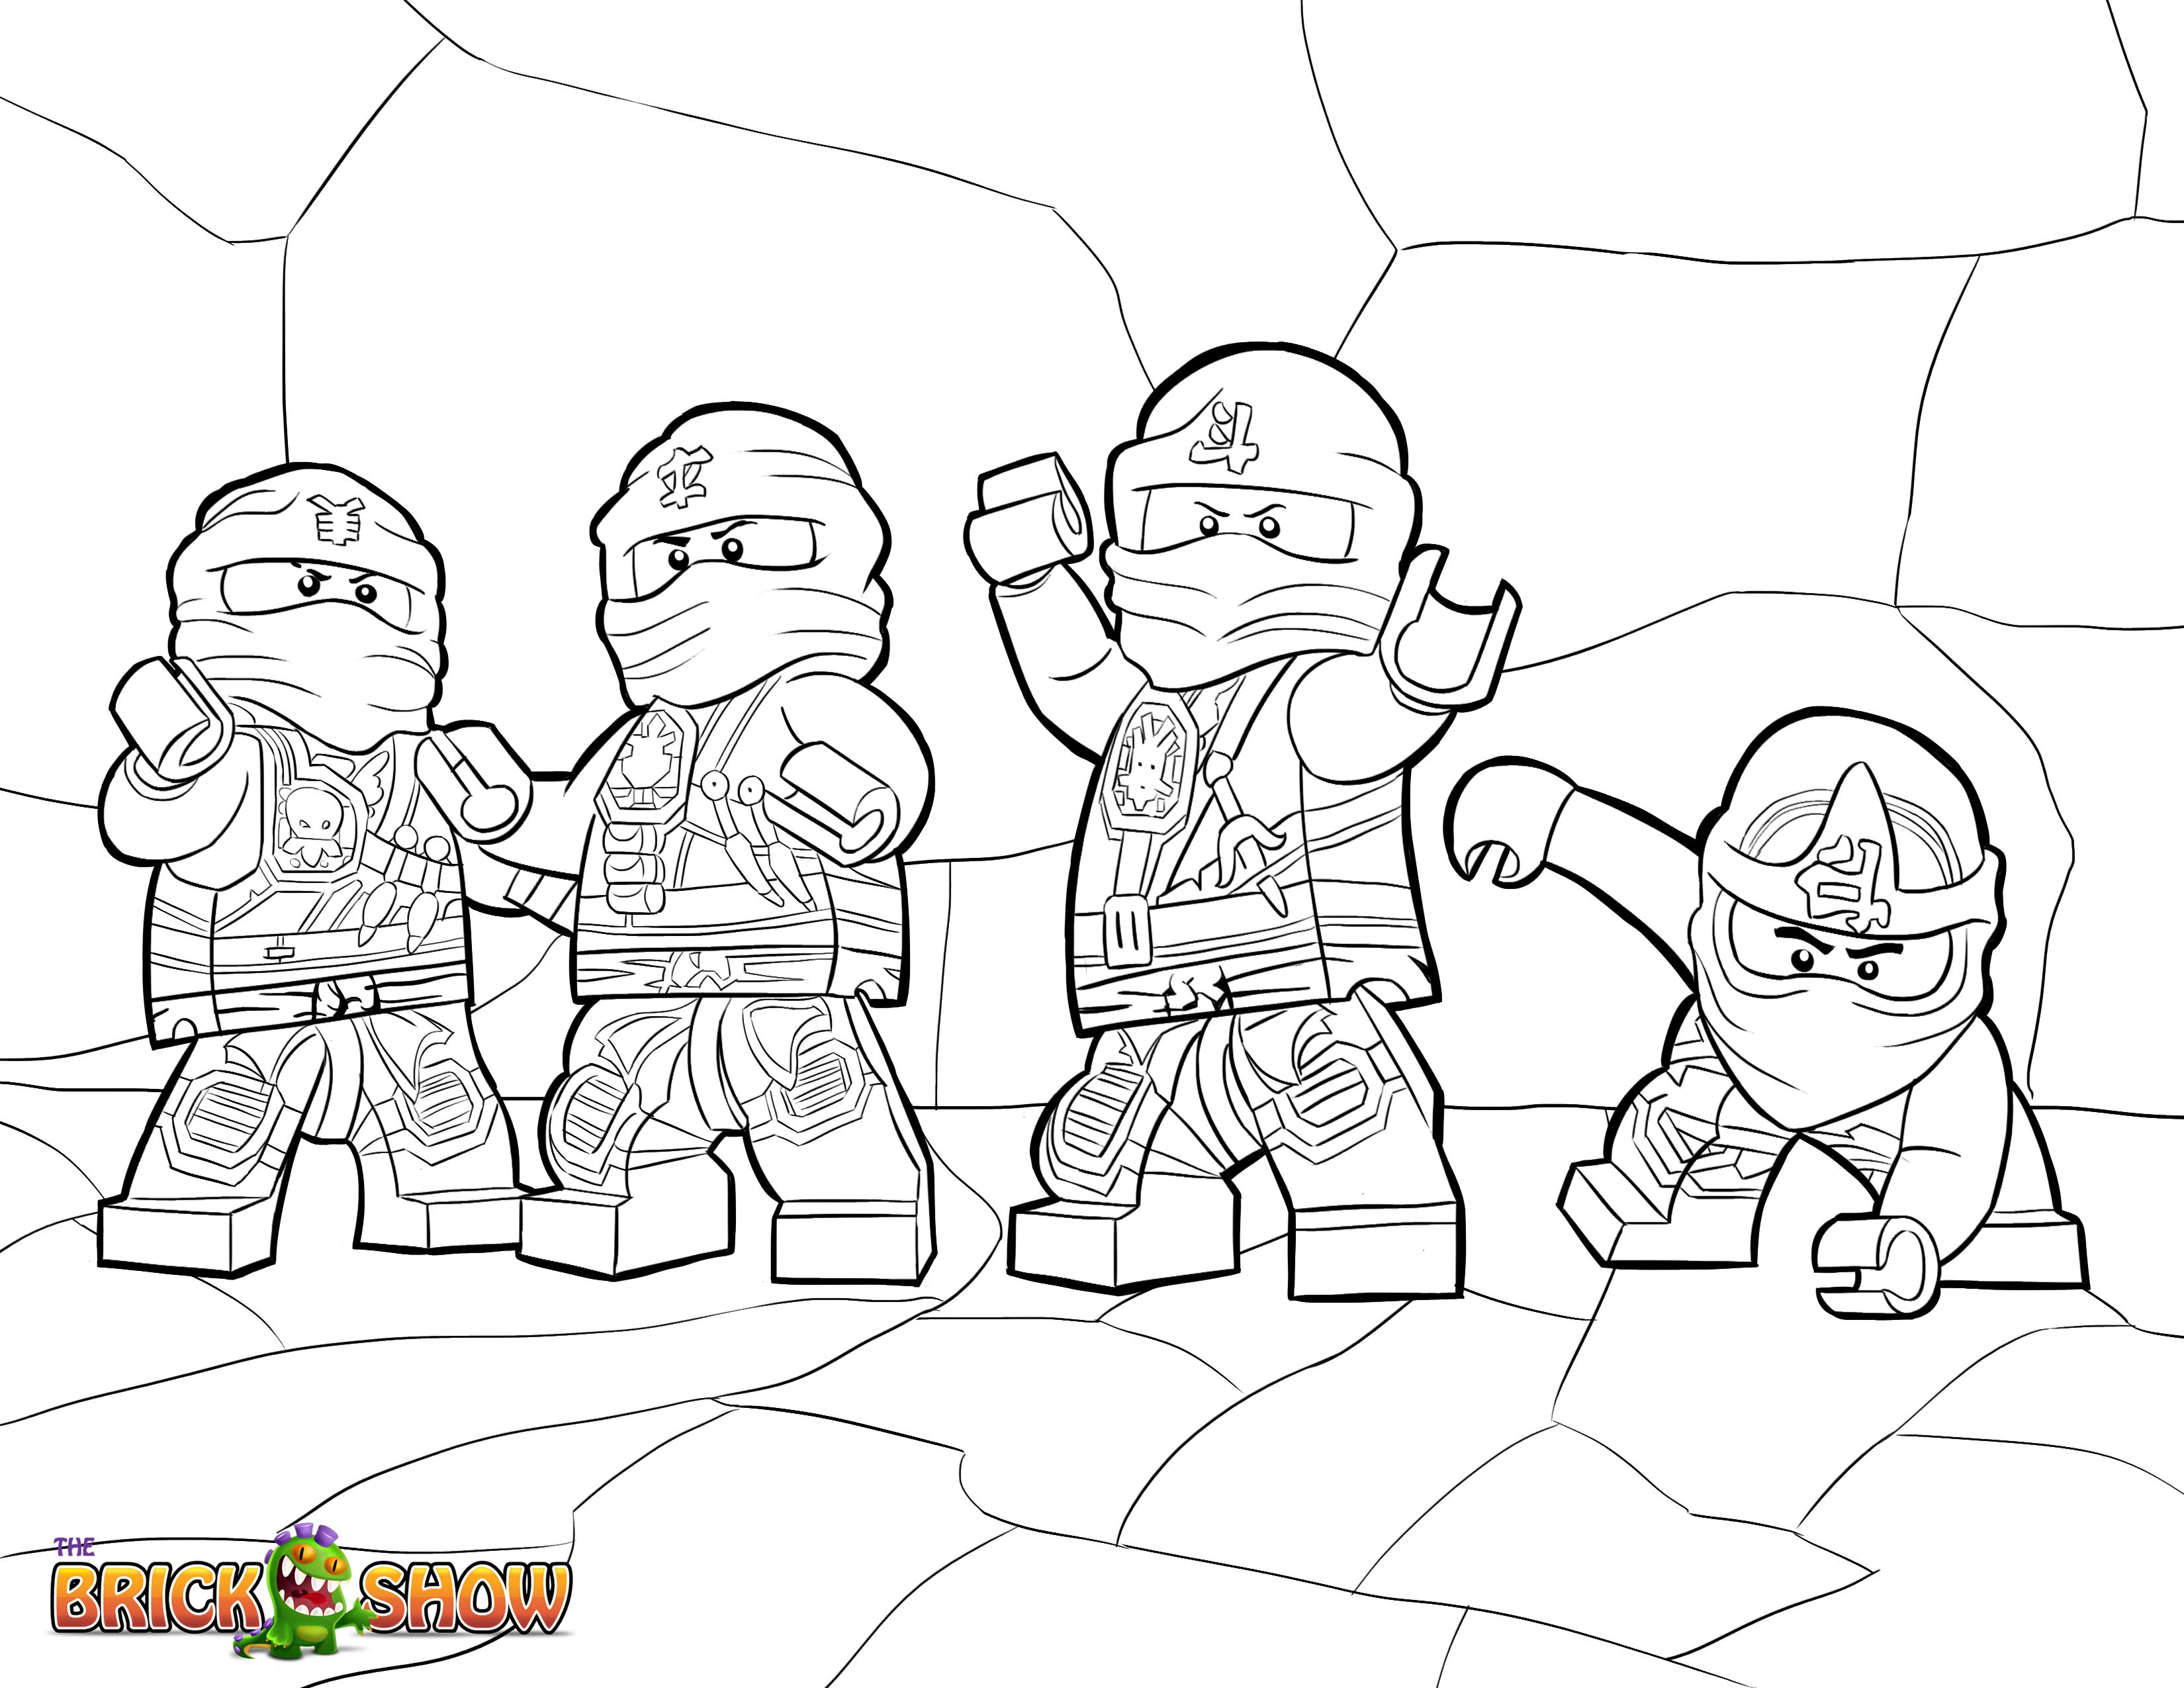 Coloring pages ninjago - Lego Ninjago Coloring Page Lego Lego Ninjago Zukin Ninjas Printable Color Sheet